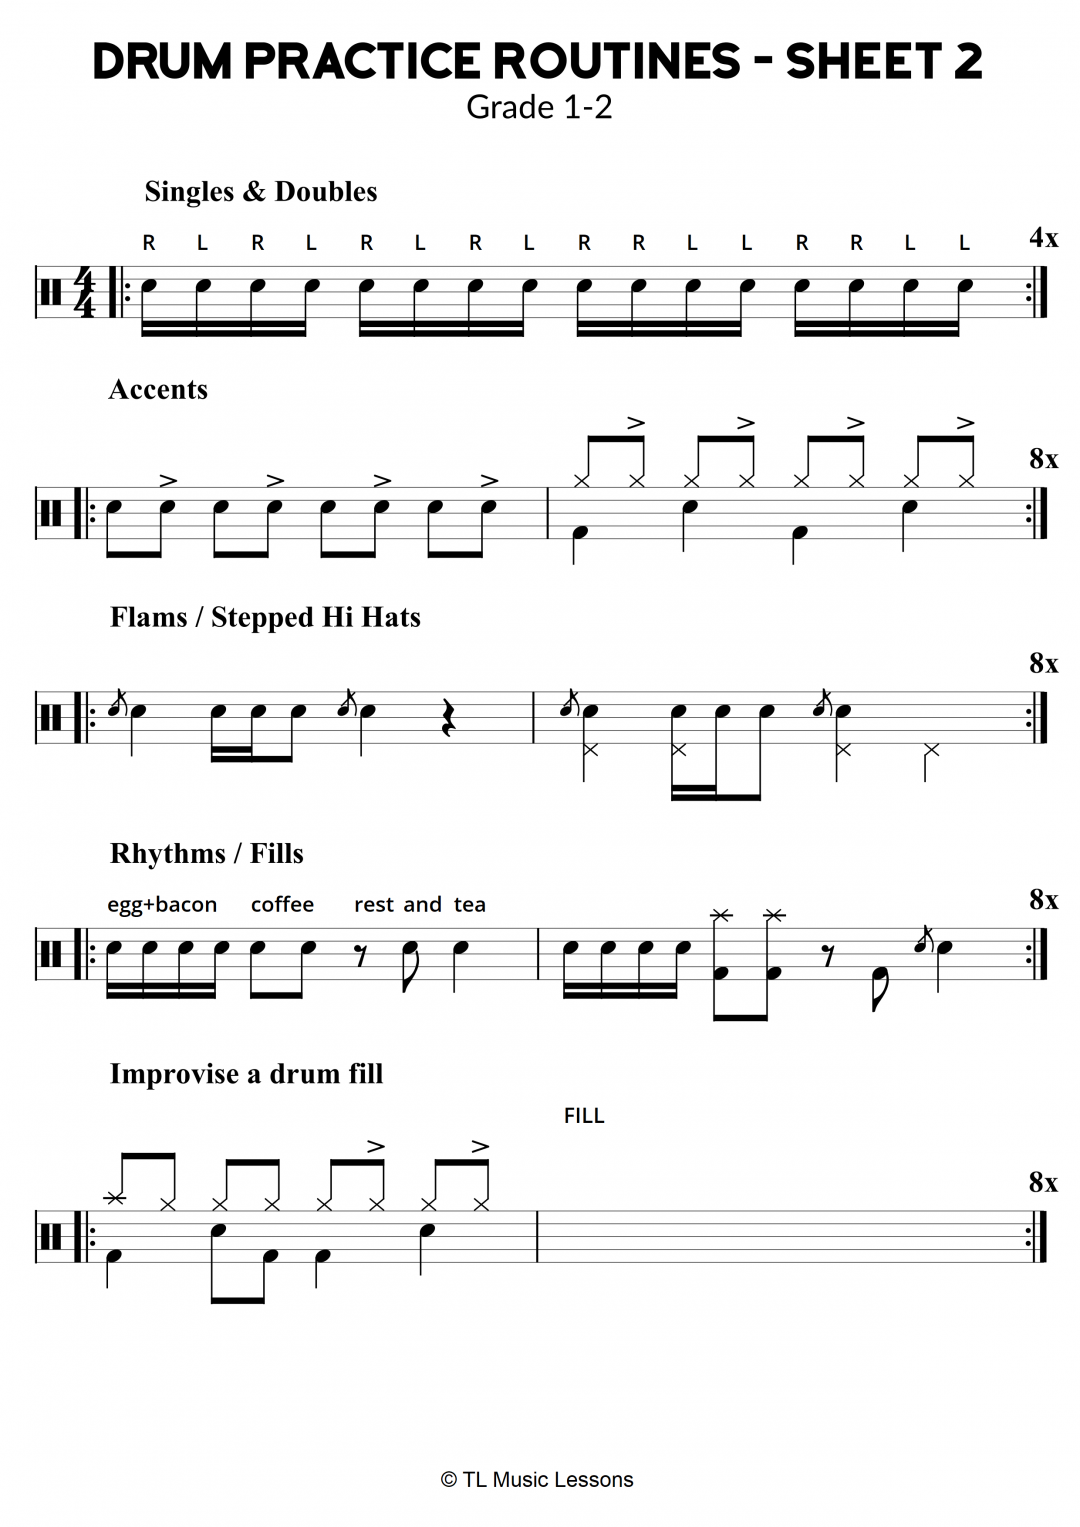 Drum Practice Routines – Sheet 2 – Grade 1-2